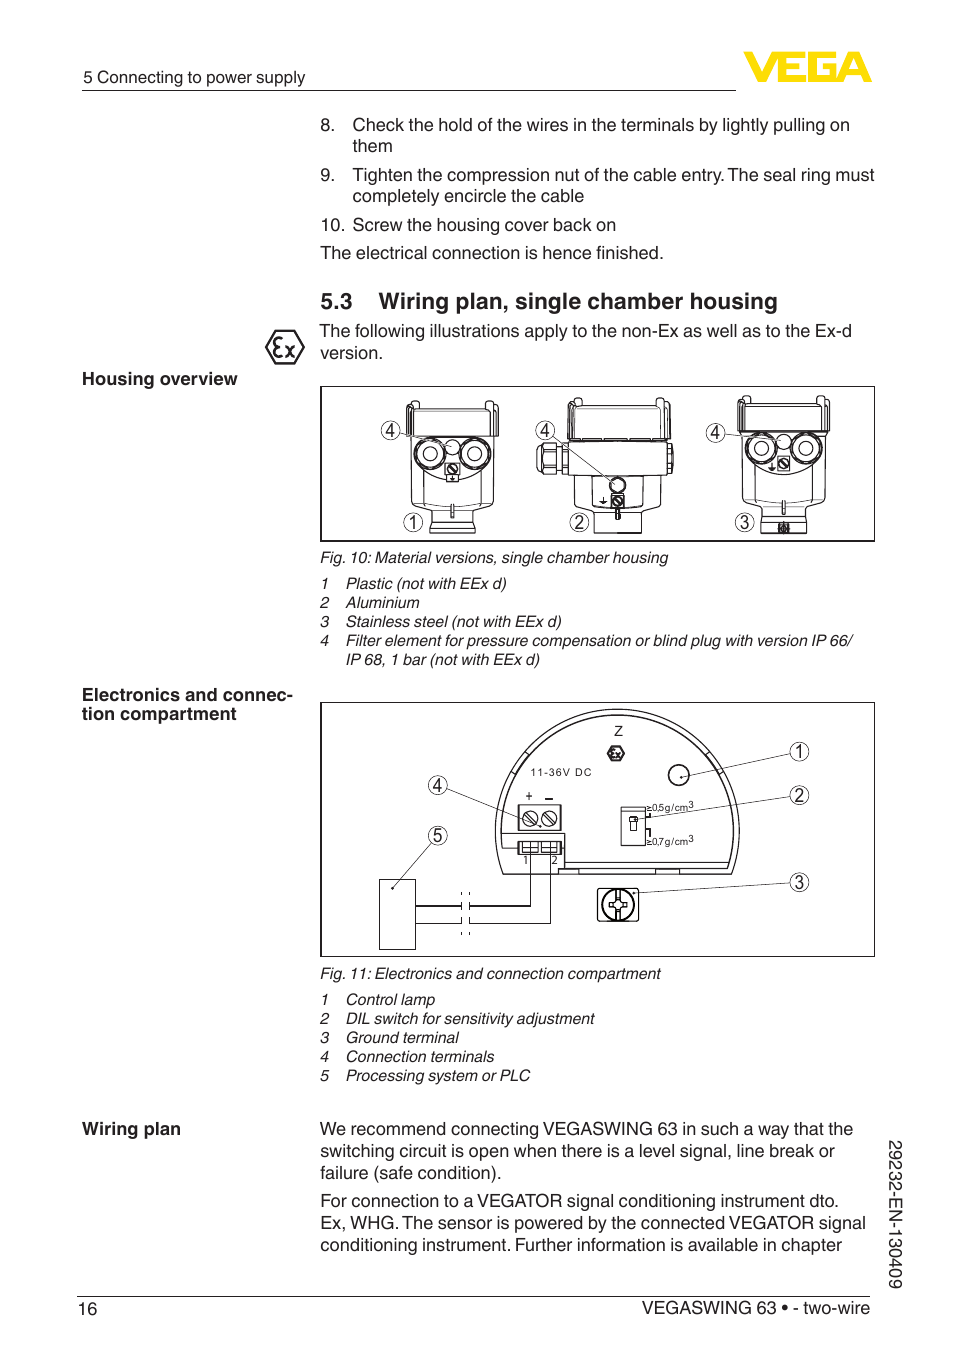 Wiring 2 Wired 3 Manual Guide